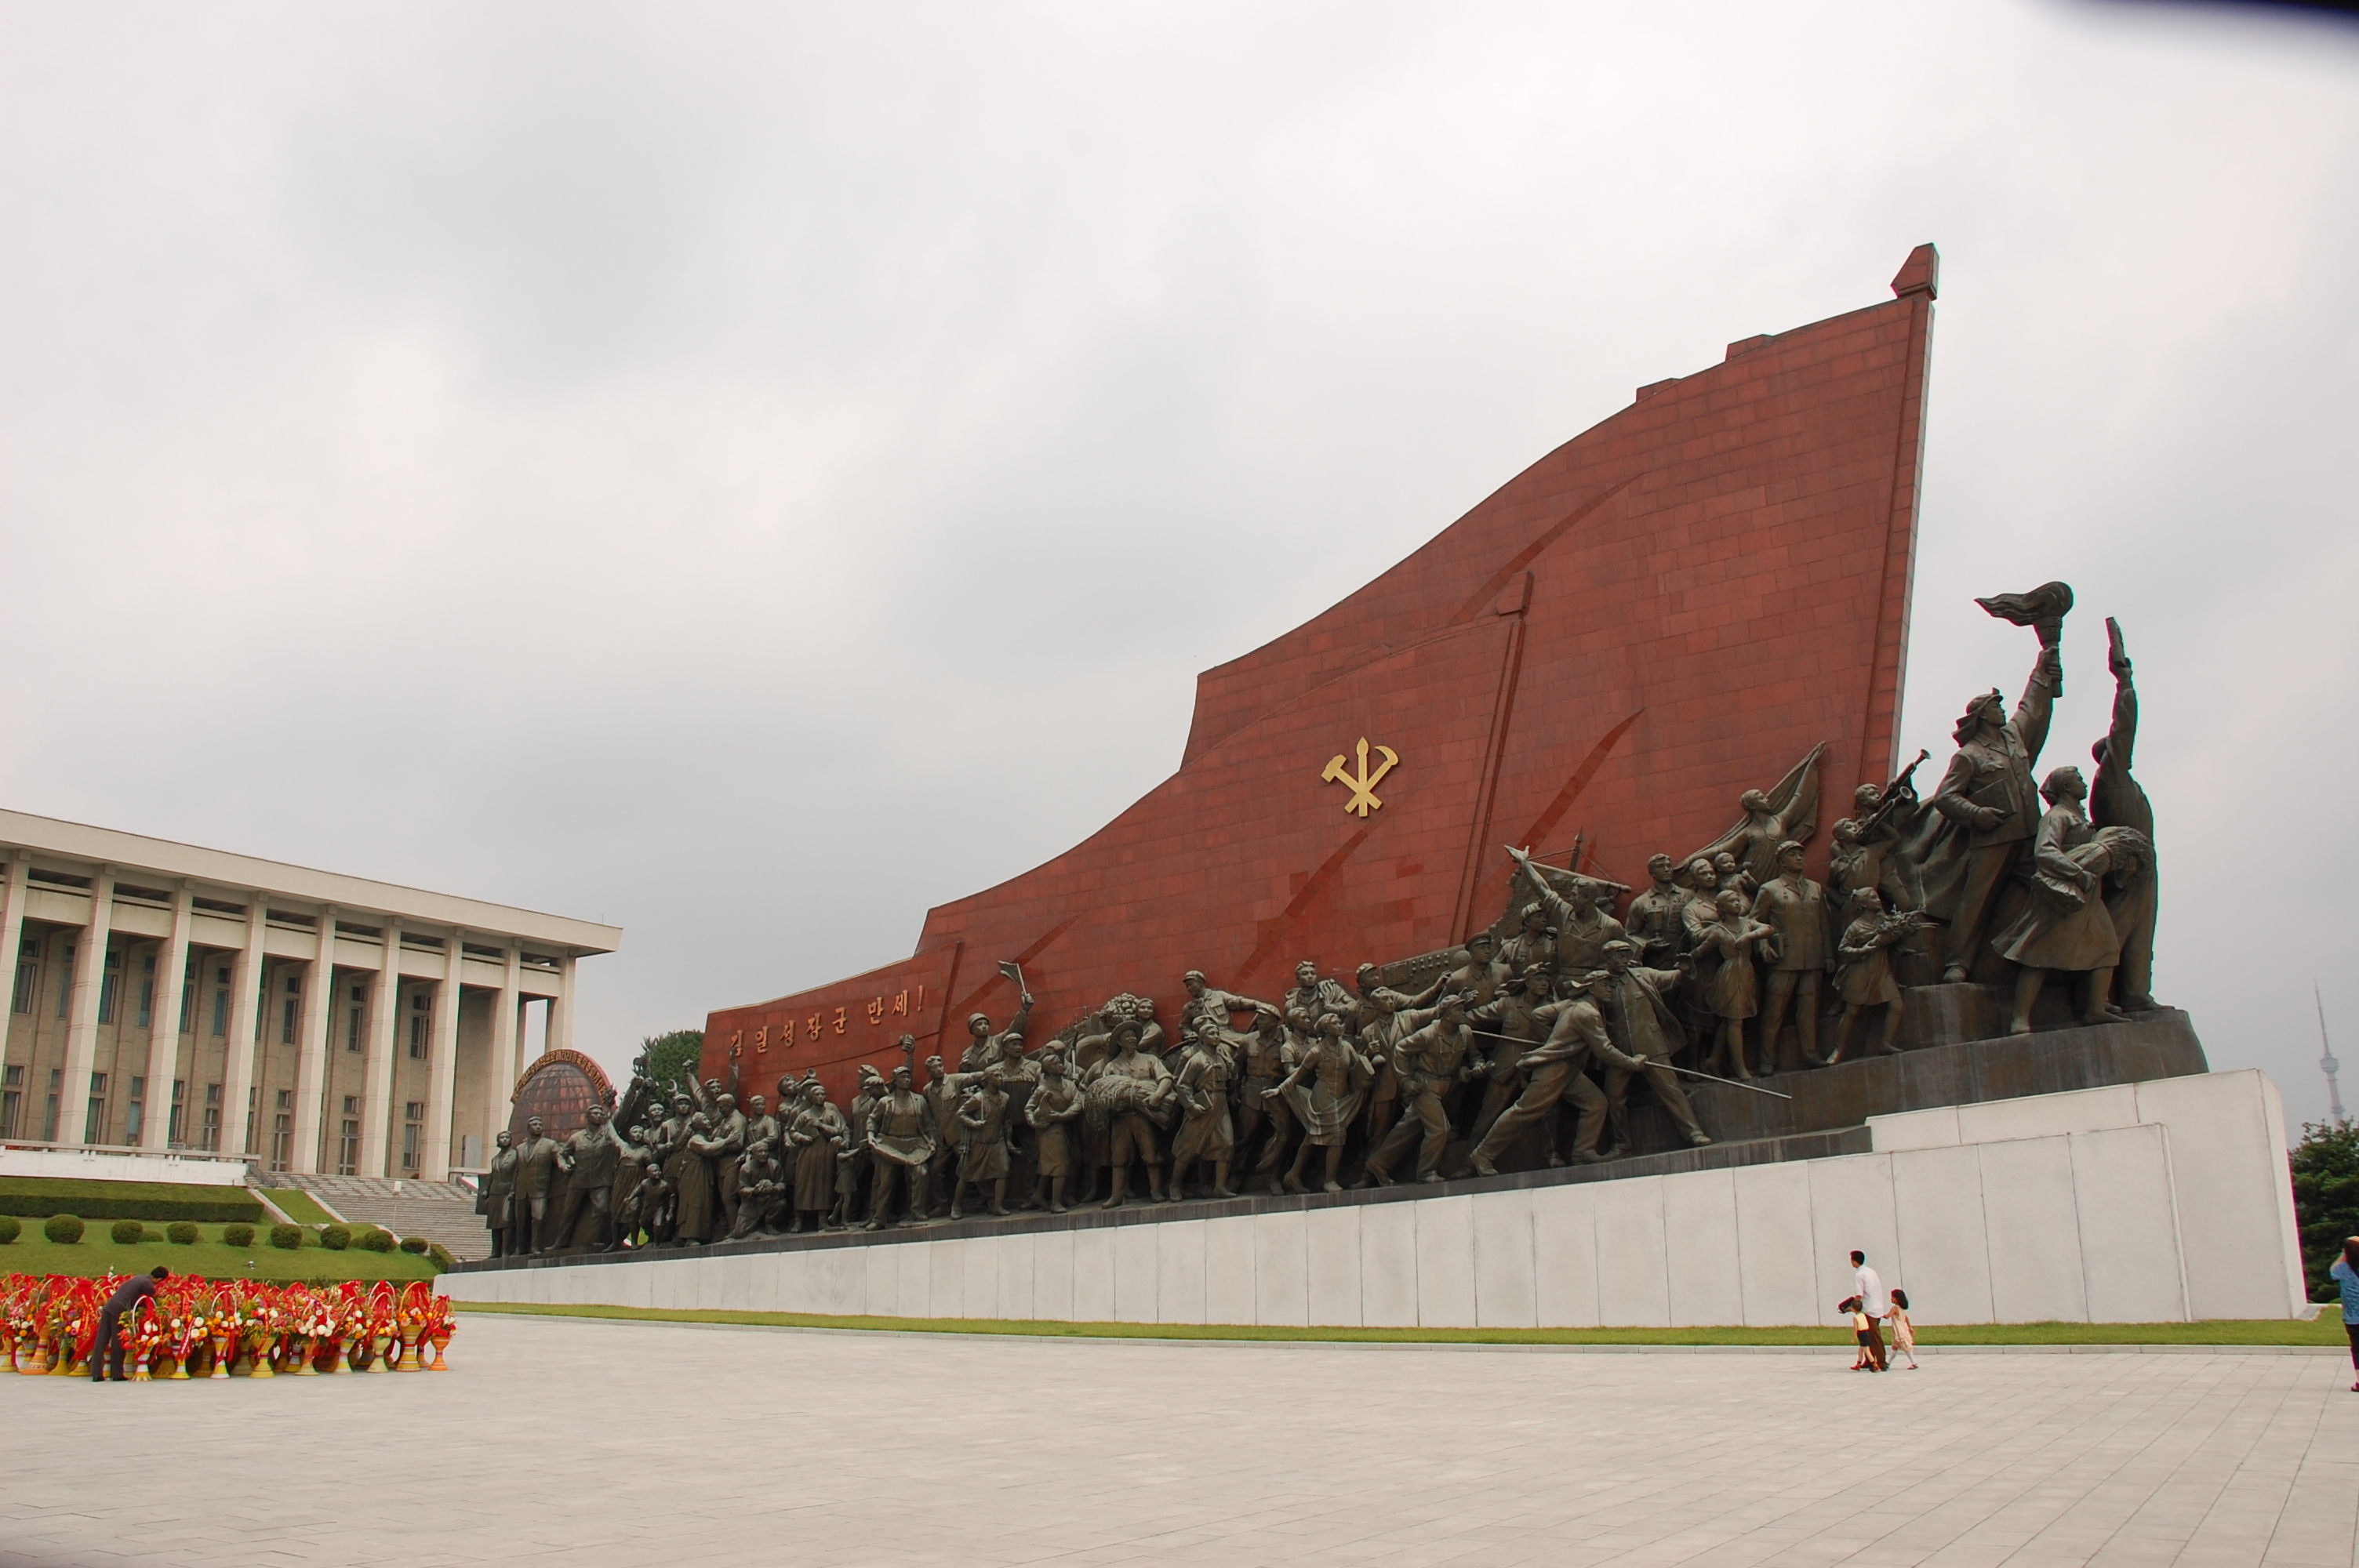 A monument in Pyongyang, North Korea https://flic.kr/p/2yKv49